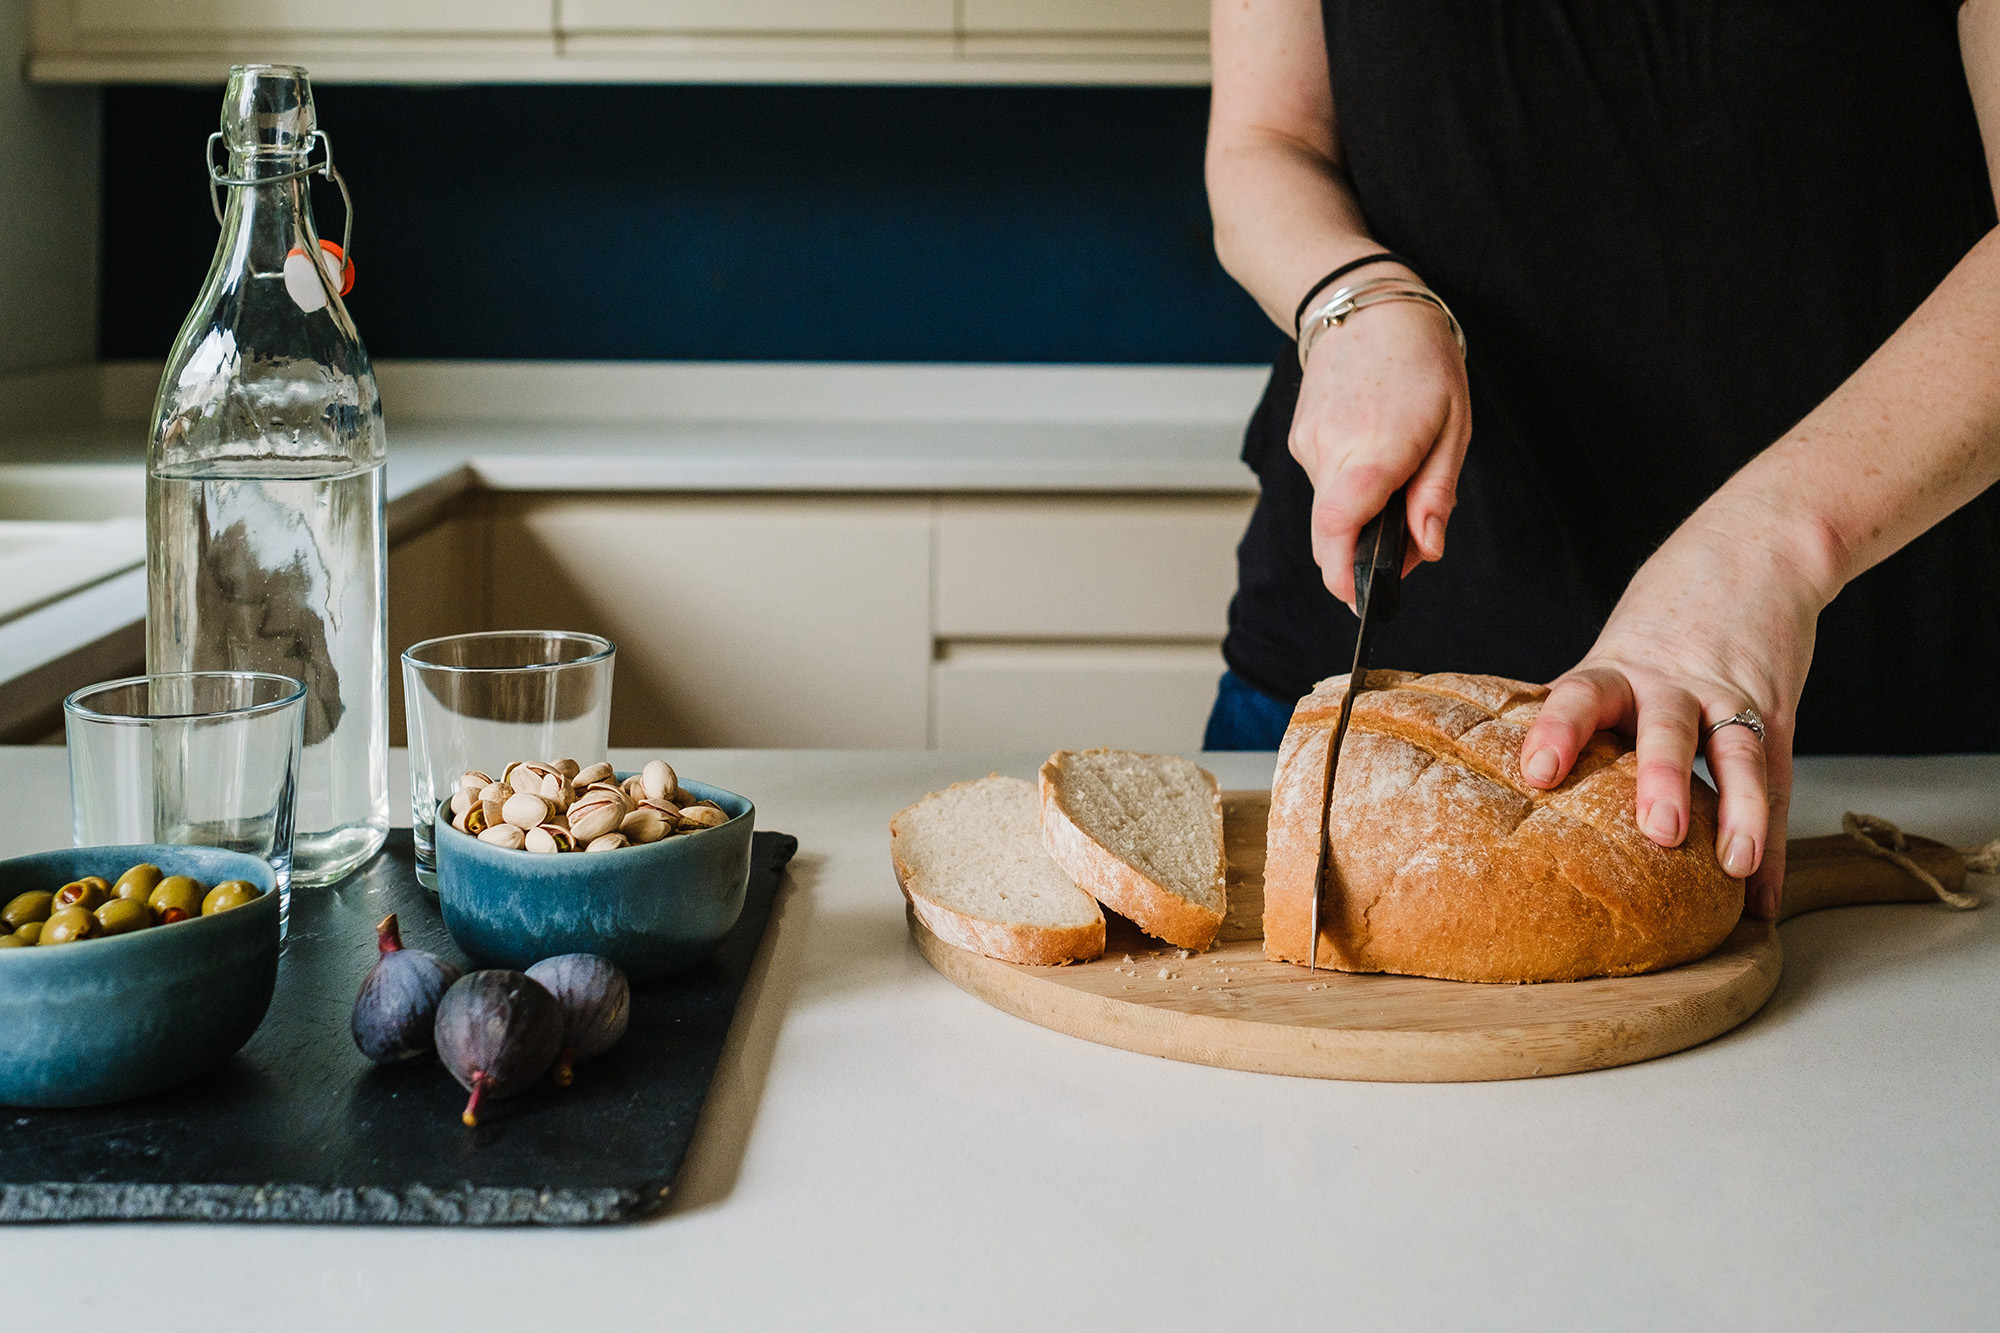 cutting bread in newly designed kitchen